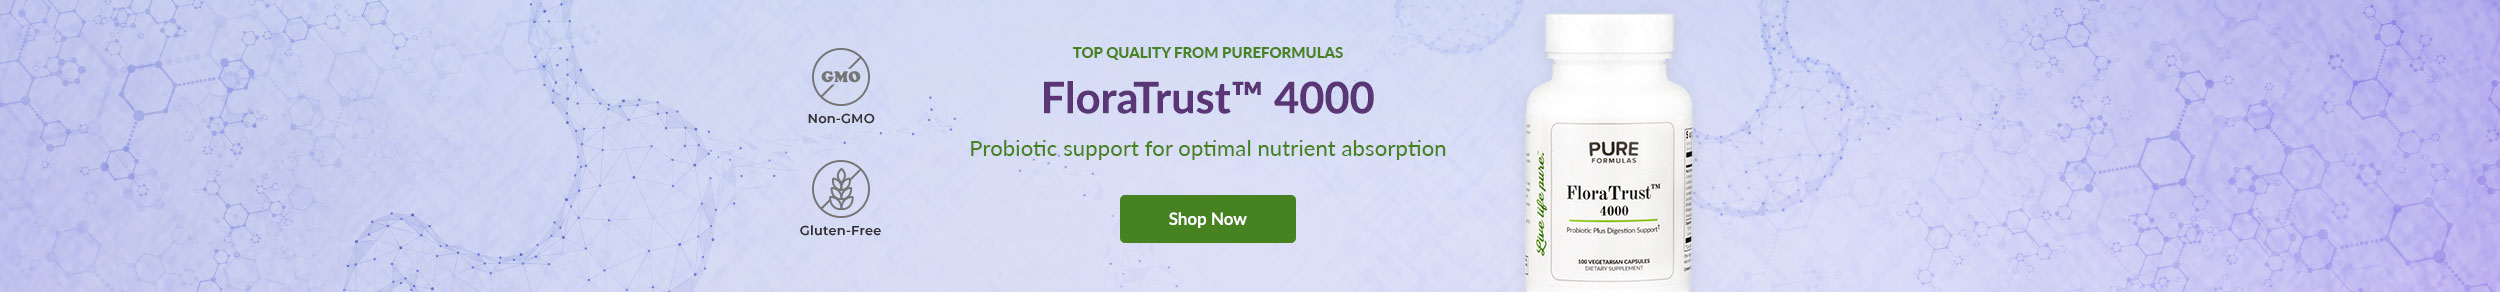 https://i3.pureformulas.net/images/static/Pureformulas-Digestive-Health-Essentials-FloraTrust_slide2_062218.jpg